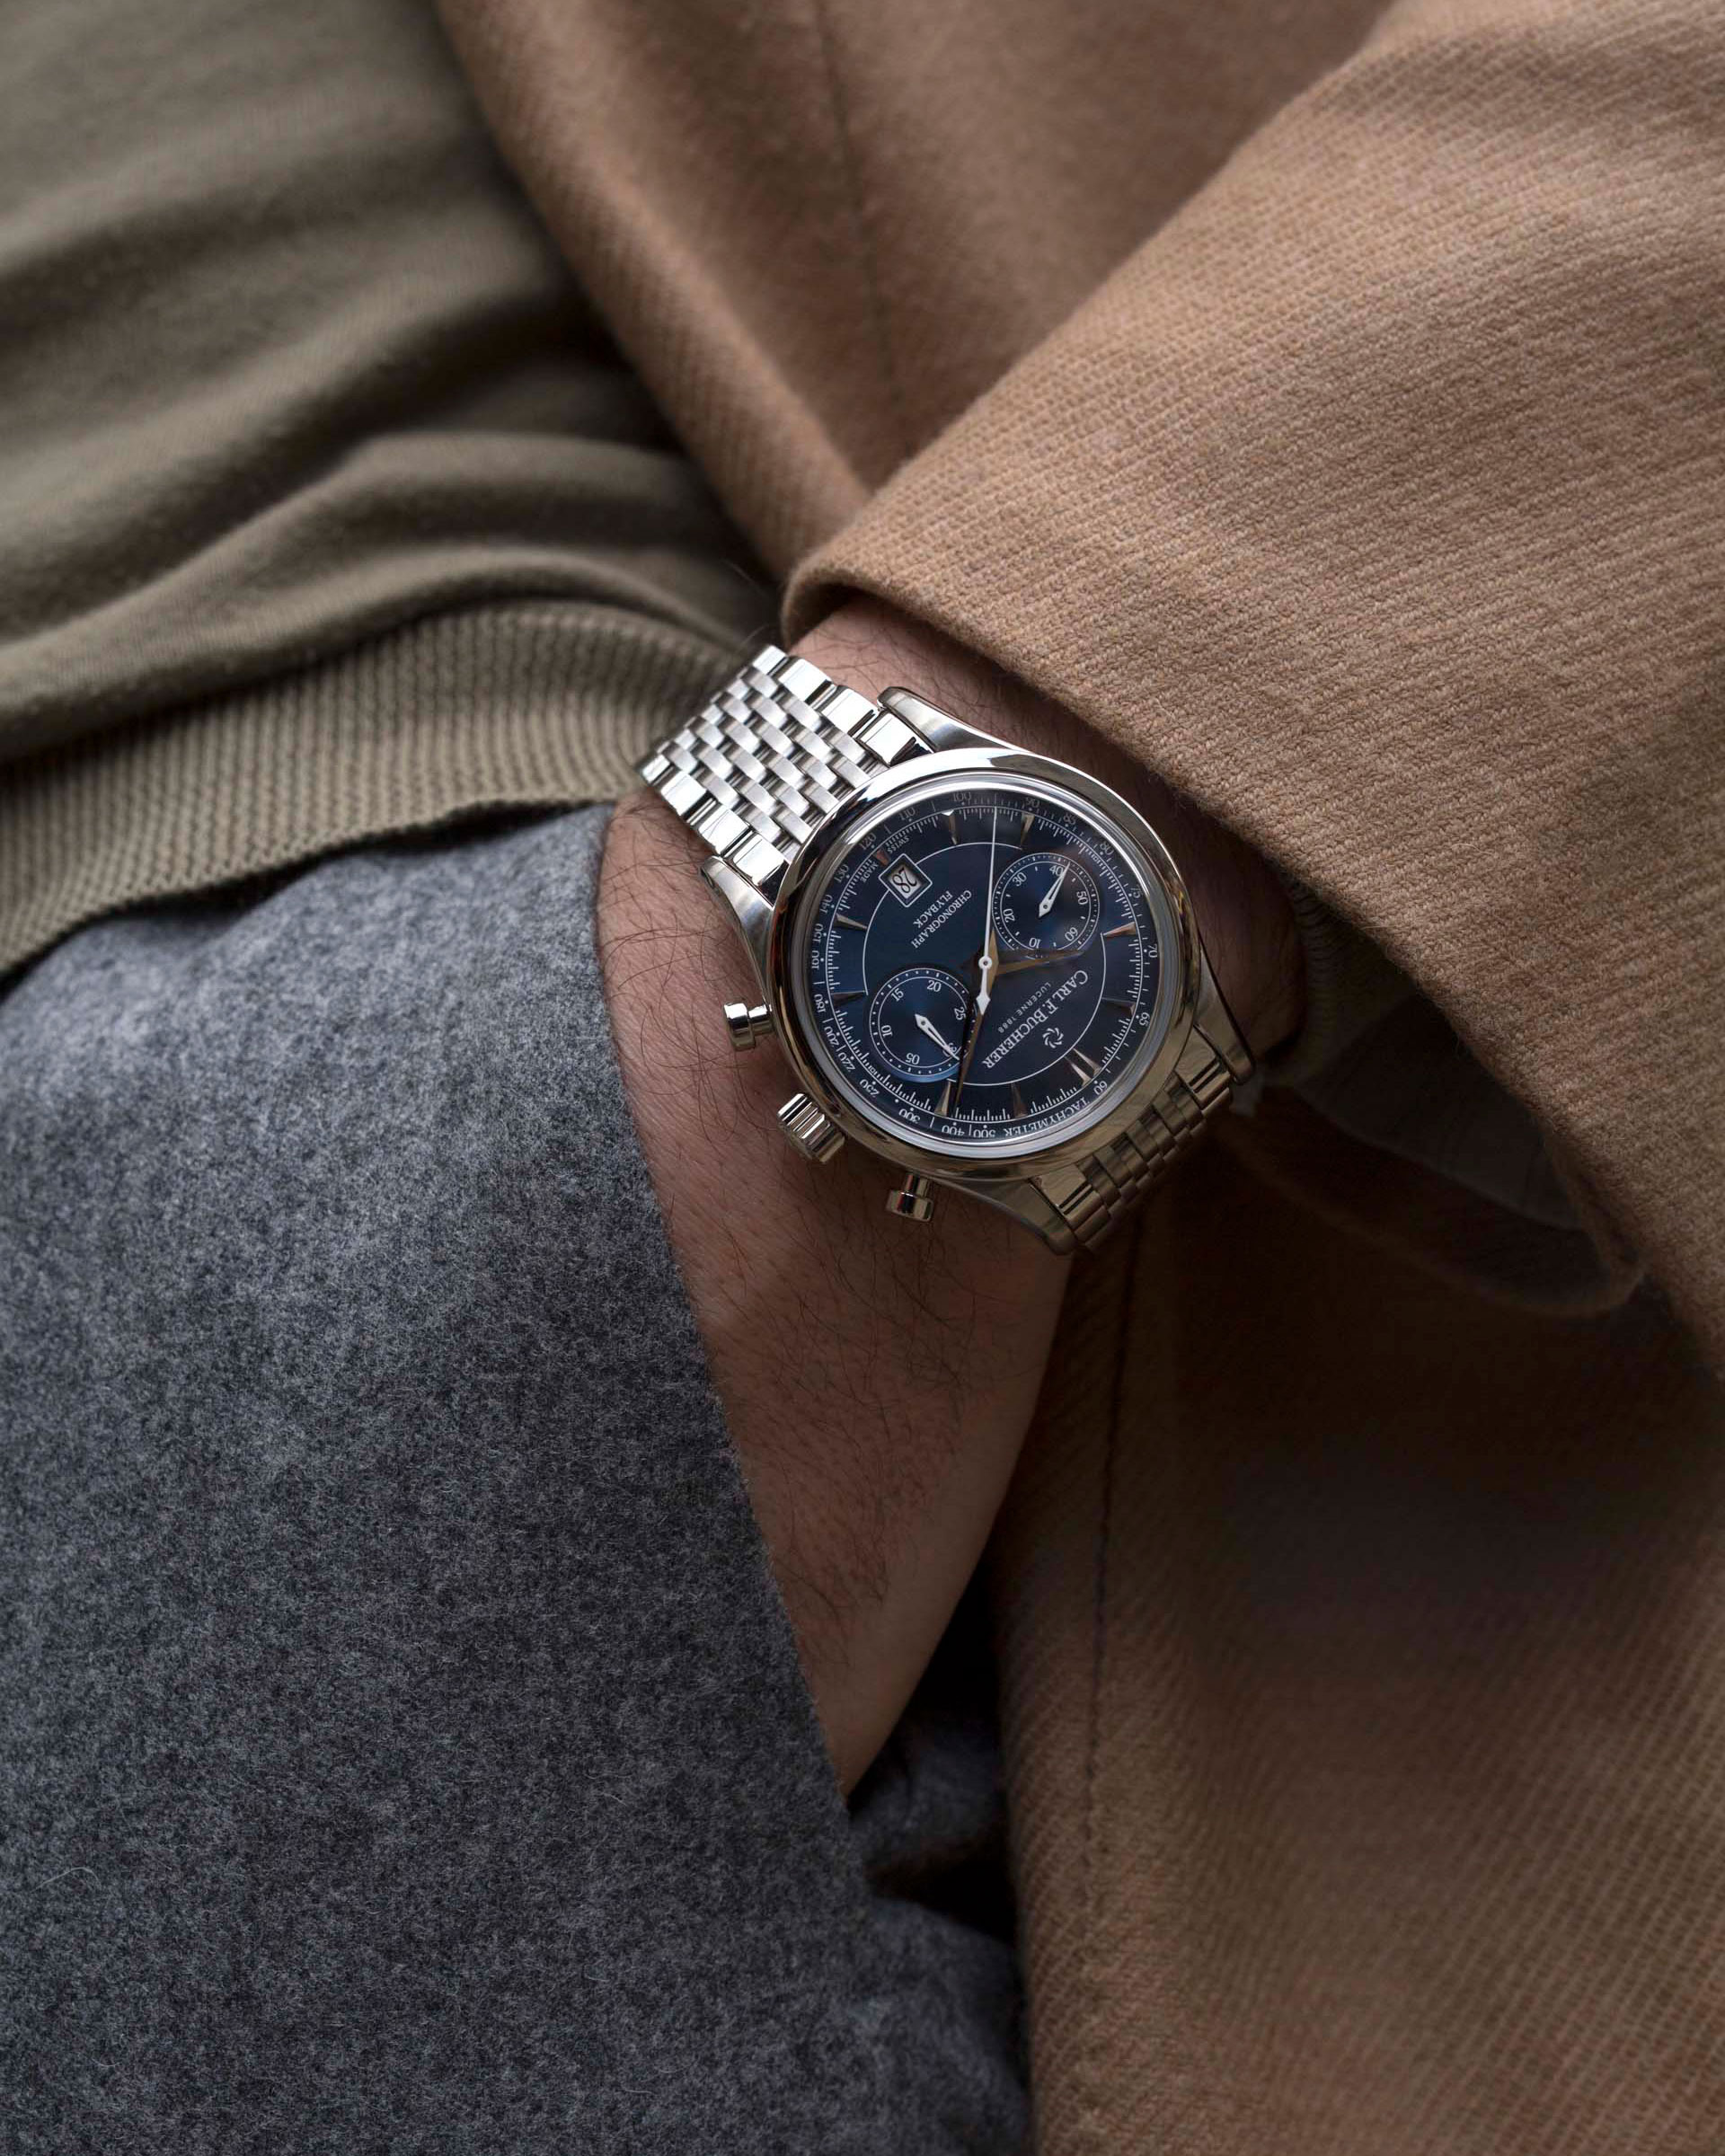 The-perfect-companion-for-the-cosmopolitan-mindset_Manero-Flyback-with-blue-dial-and-metal-bracelet-(2).jpg